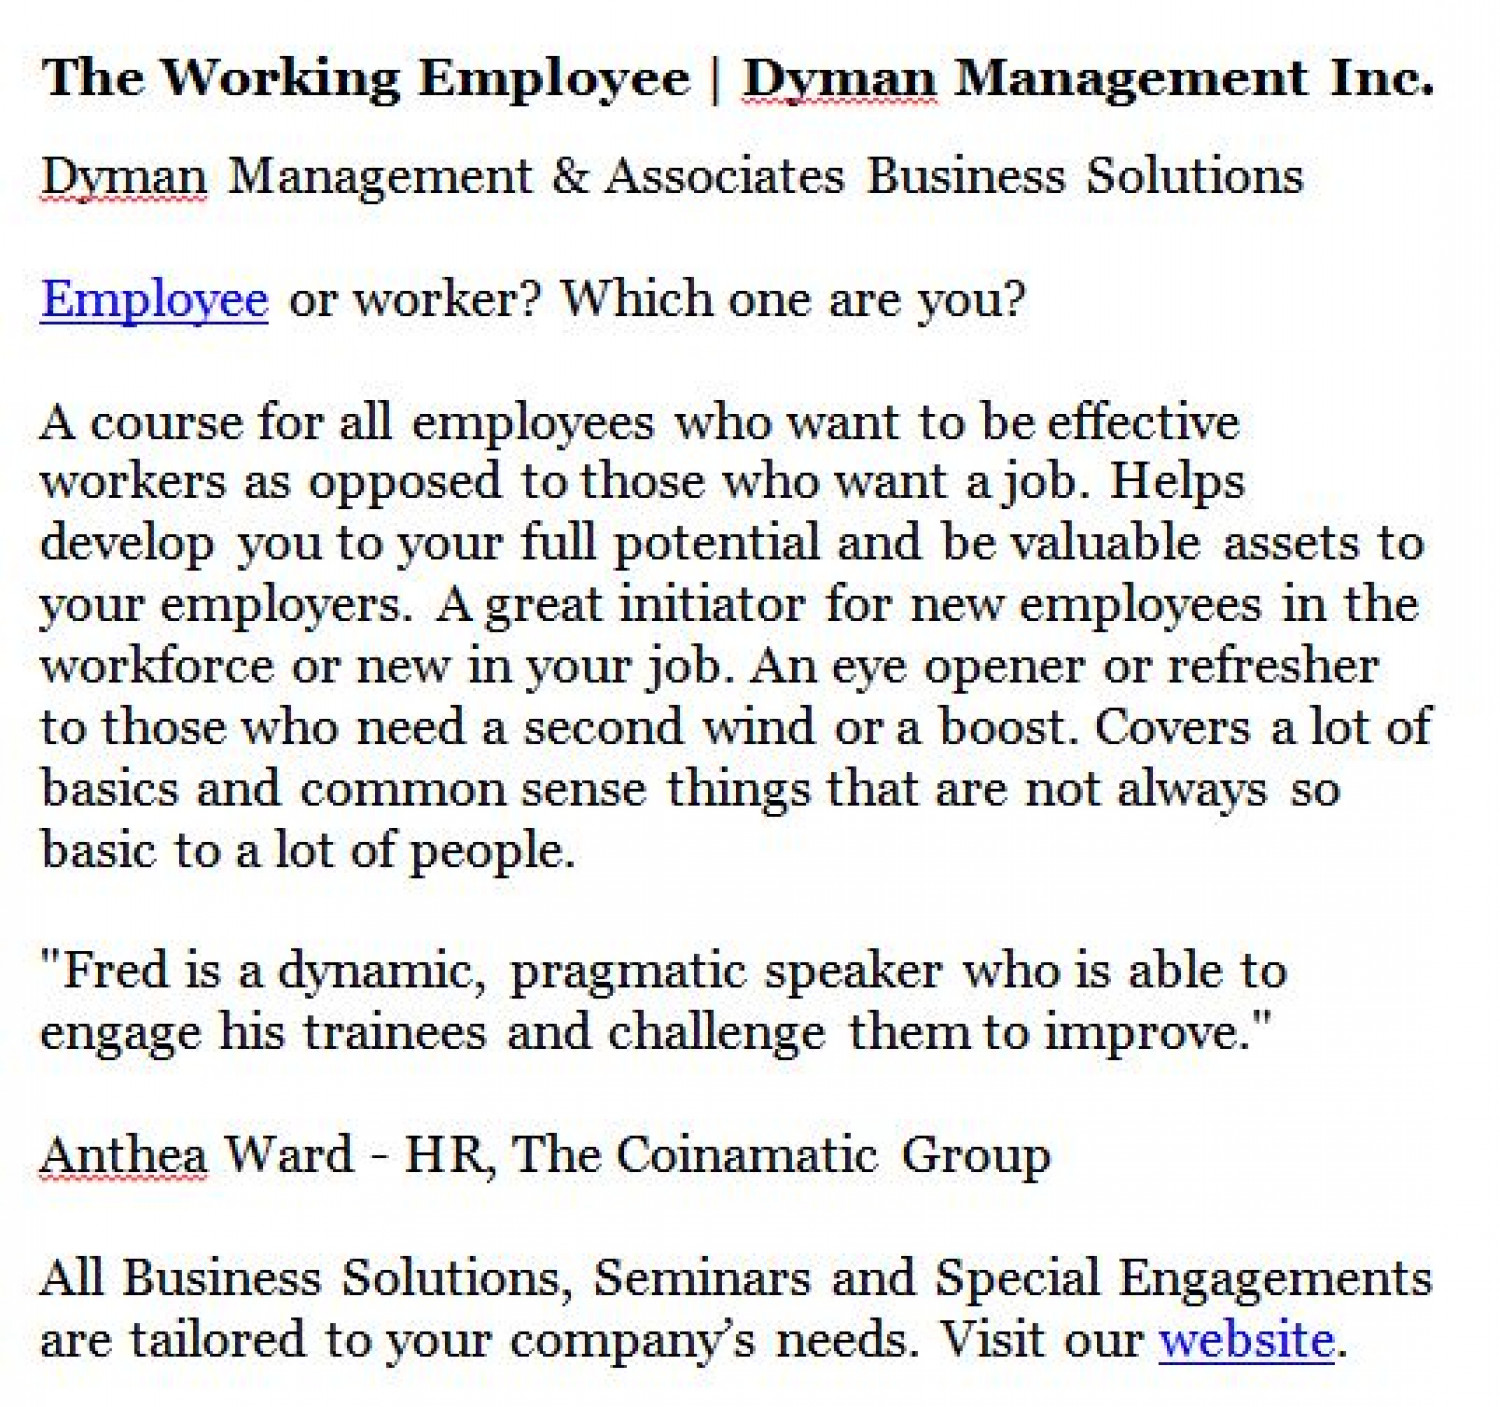 The Working Employee | Dyman Management Inc. Infographic